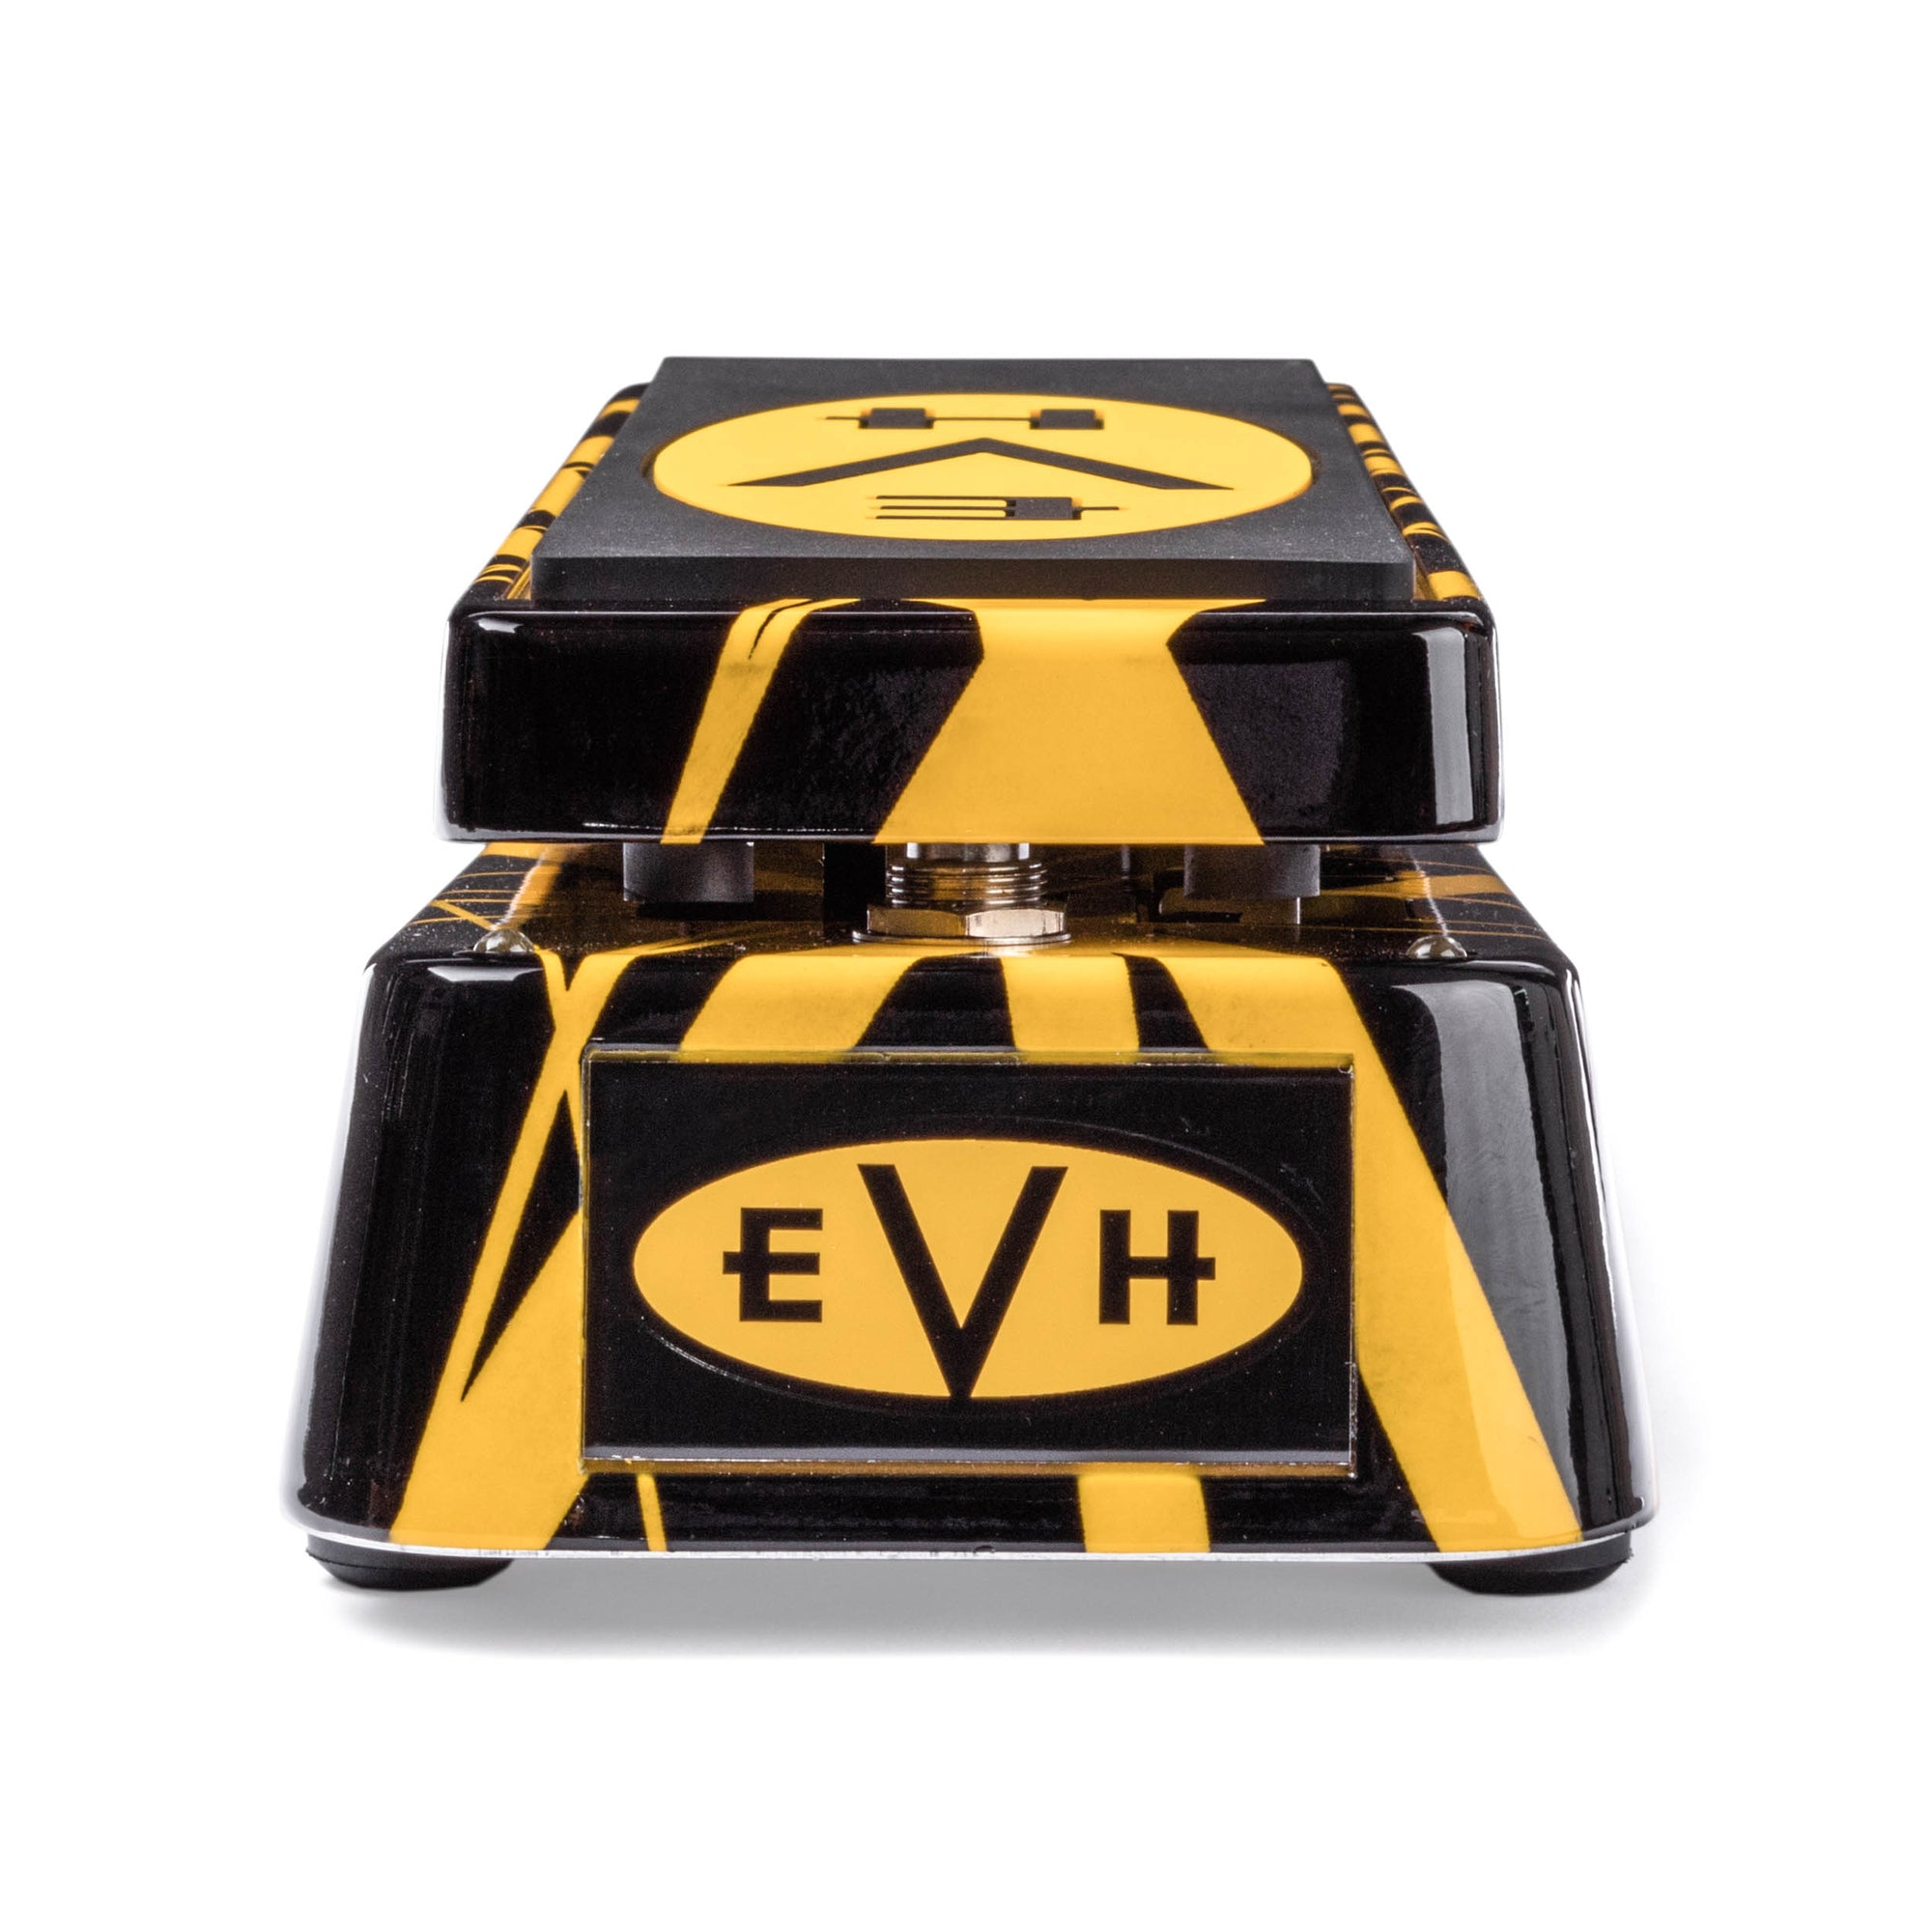 f91d65604a2 Dunlop EVH95 EVH Signature Cry Baby Wah Pedal - Music Village USA